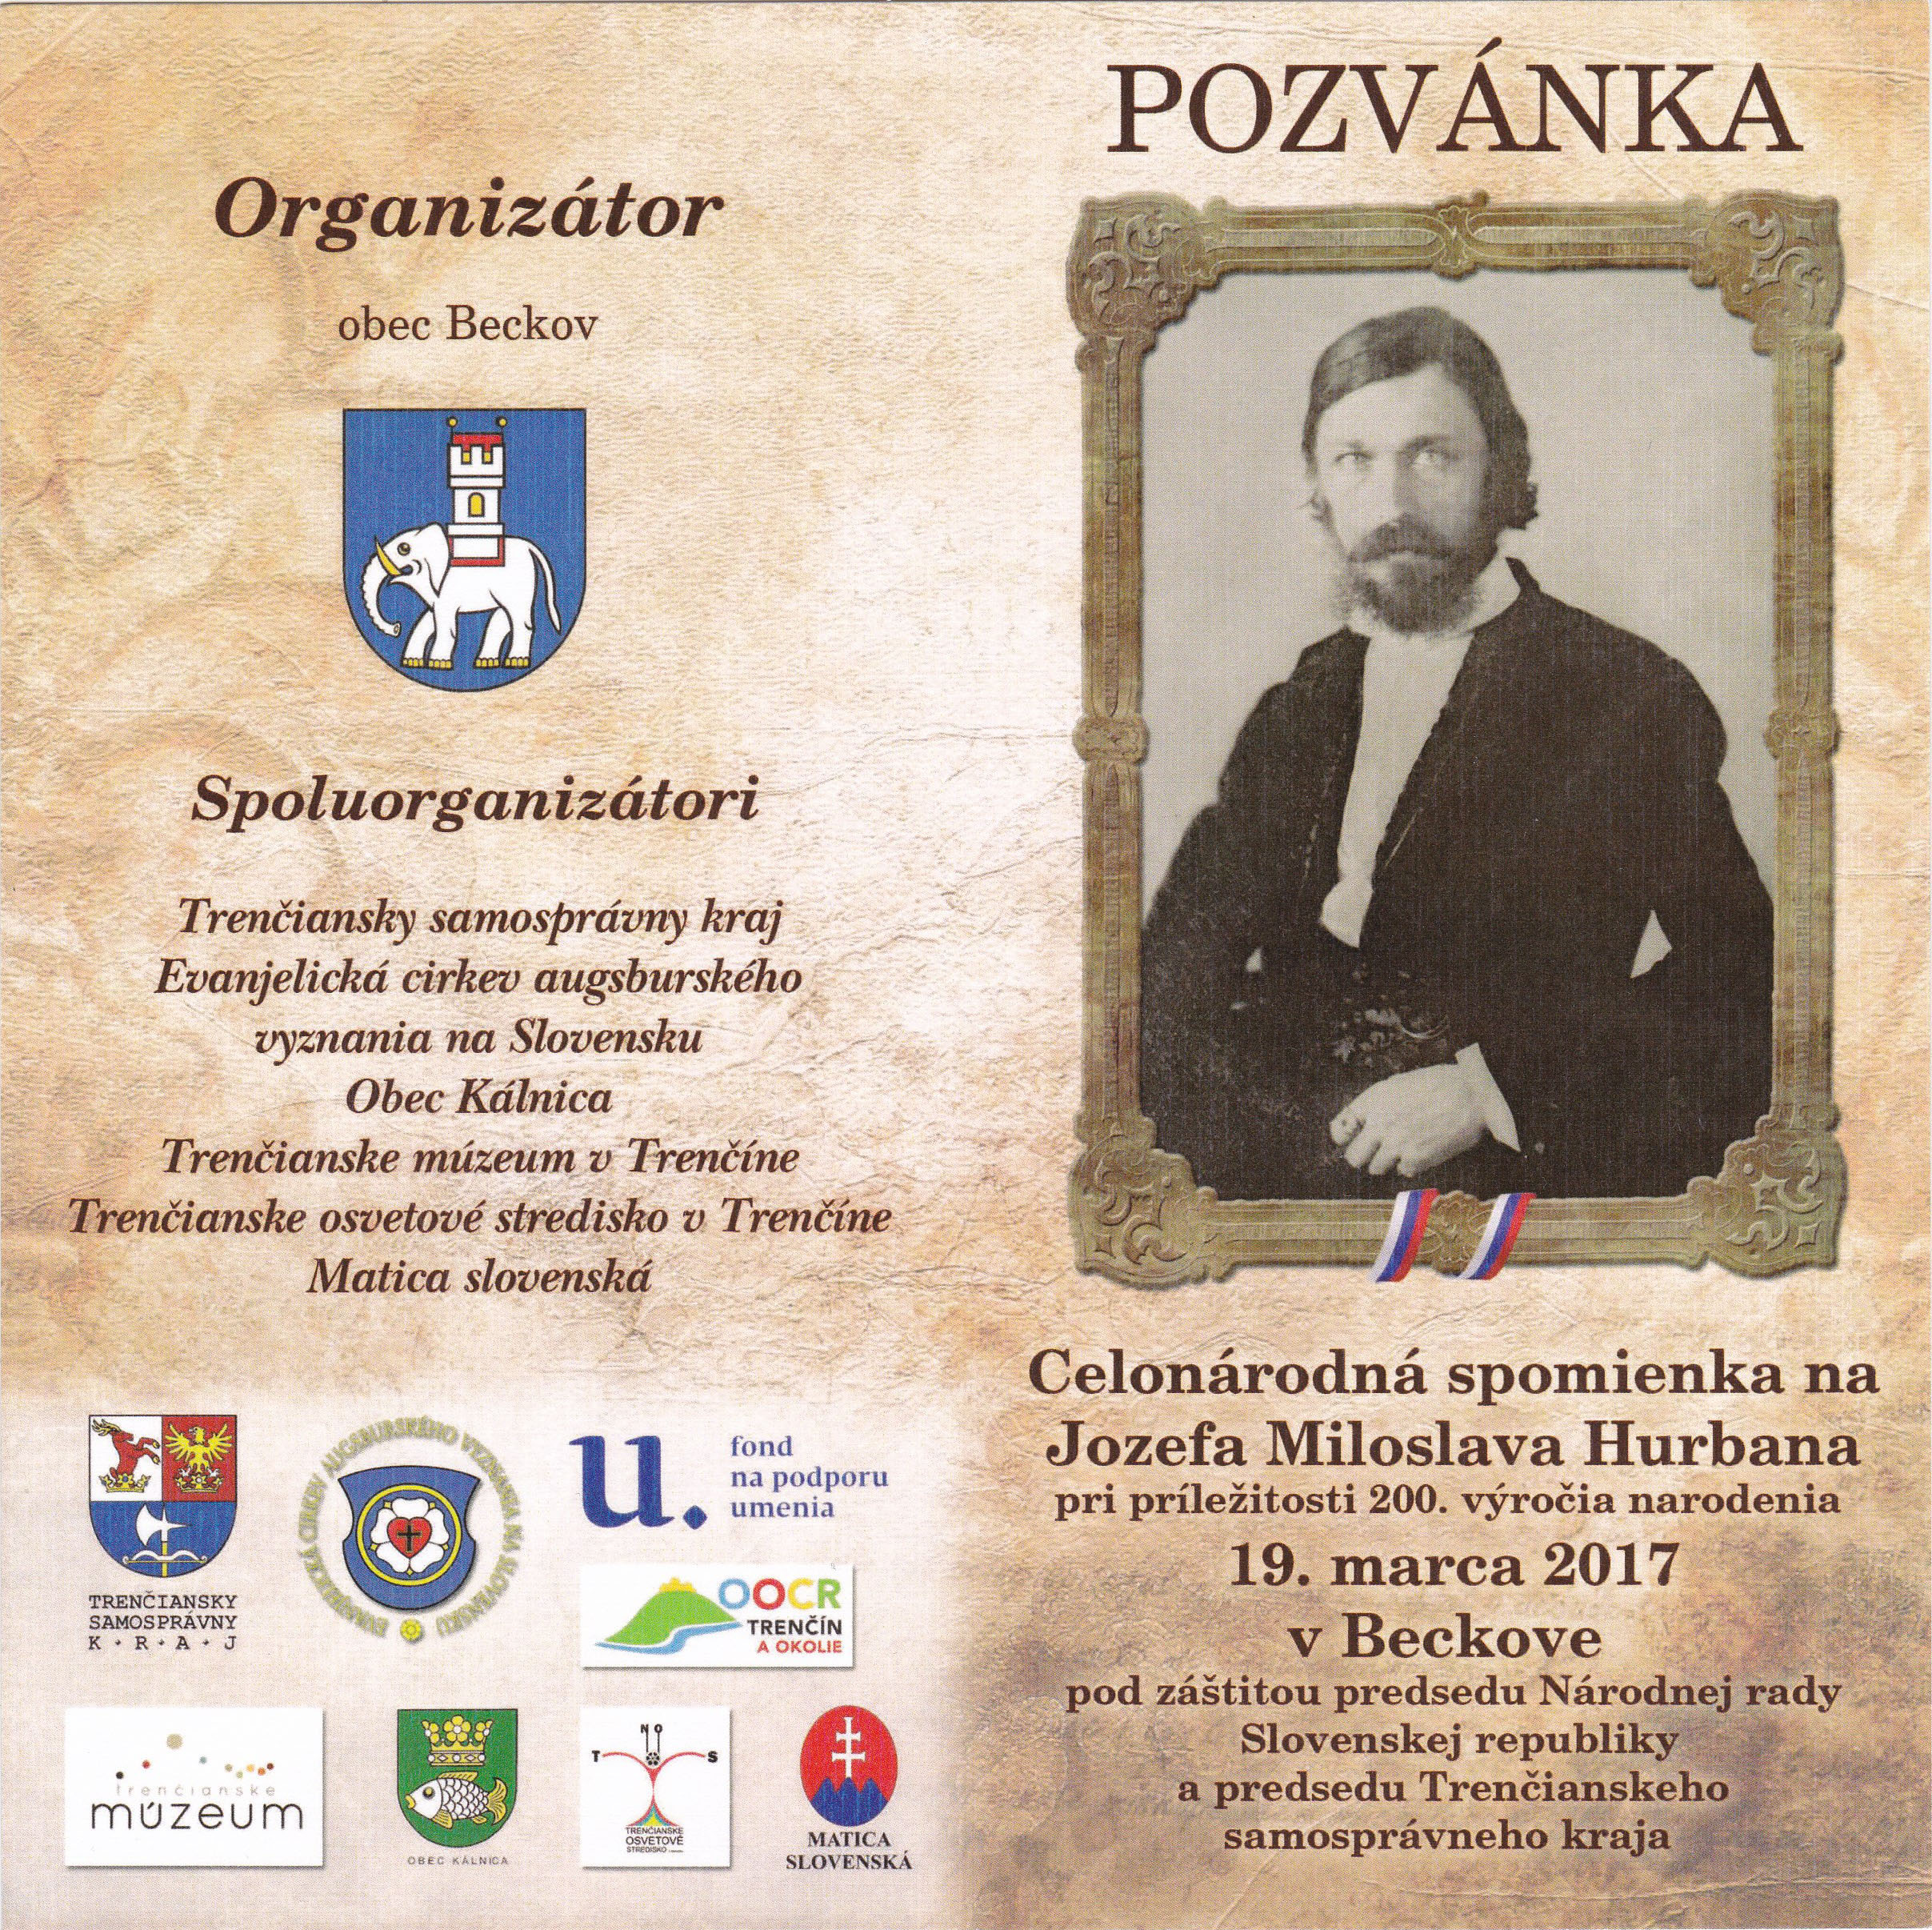 New issues, inaugurations, the most beautiful stamps Photoreport from inauguration of the postage stamp Personalities: Jozef Miloslav Hurban (1817 - 1888)